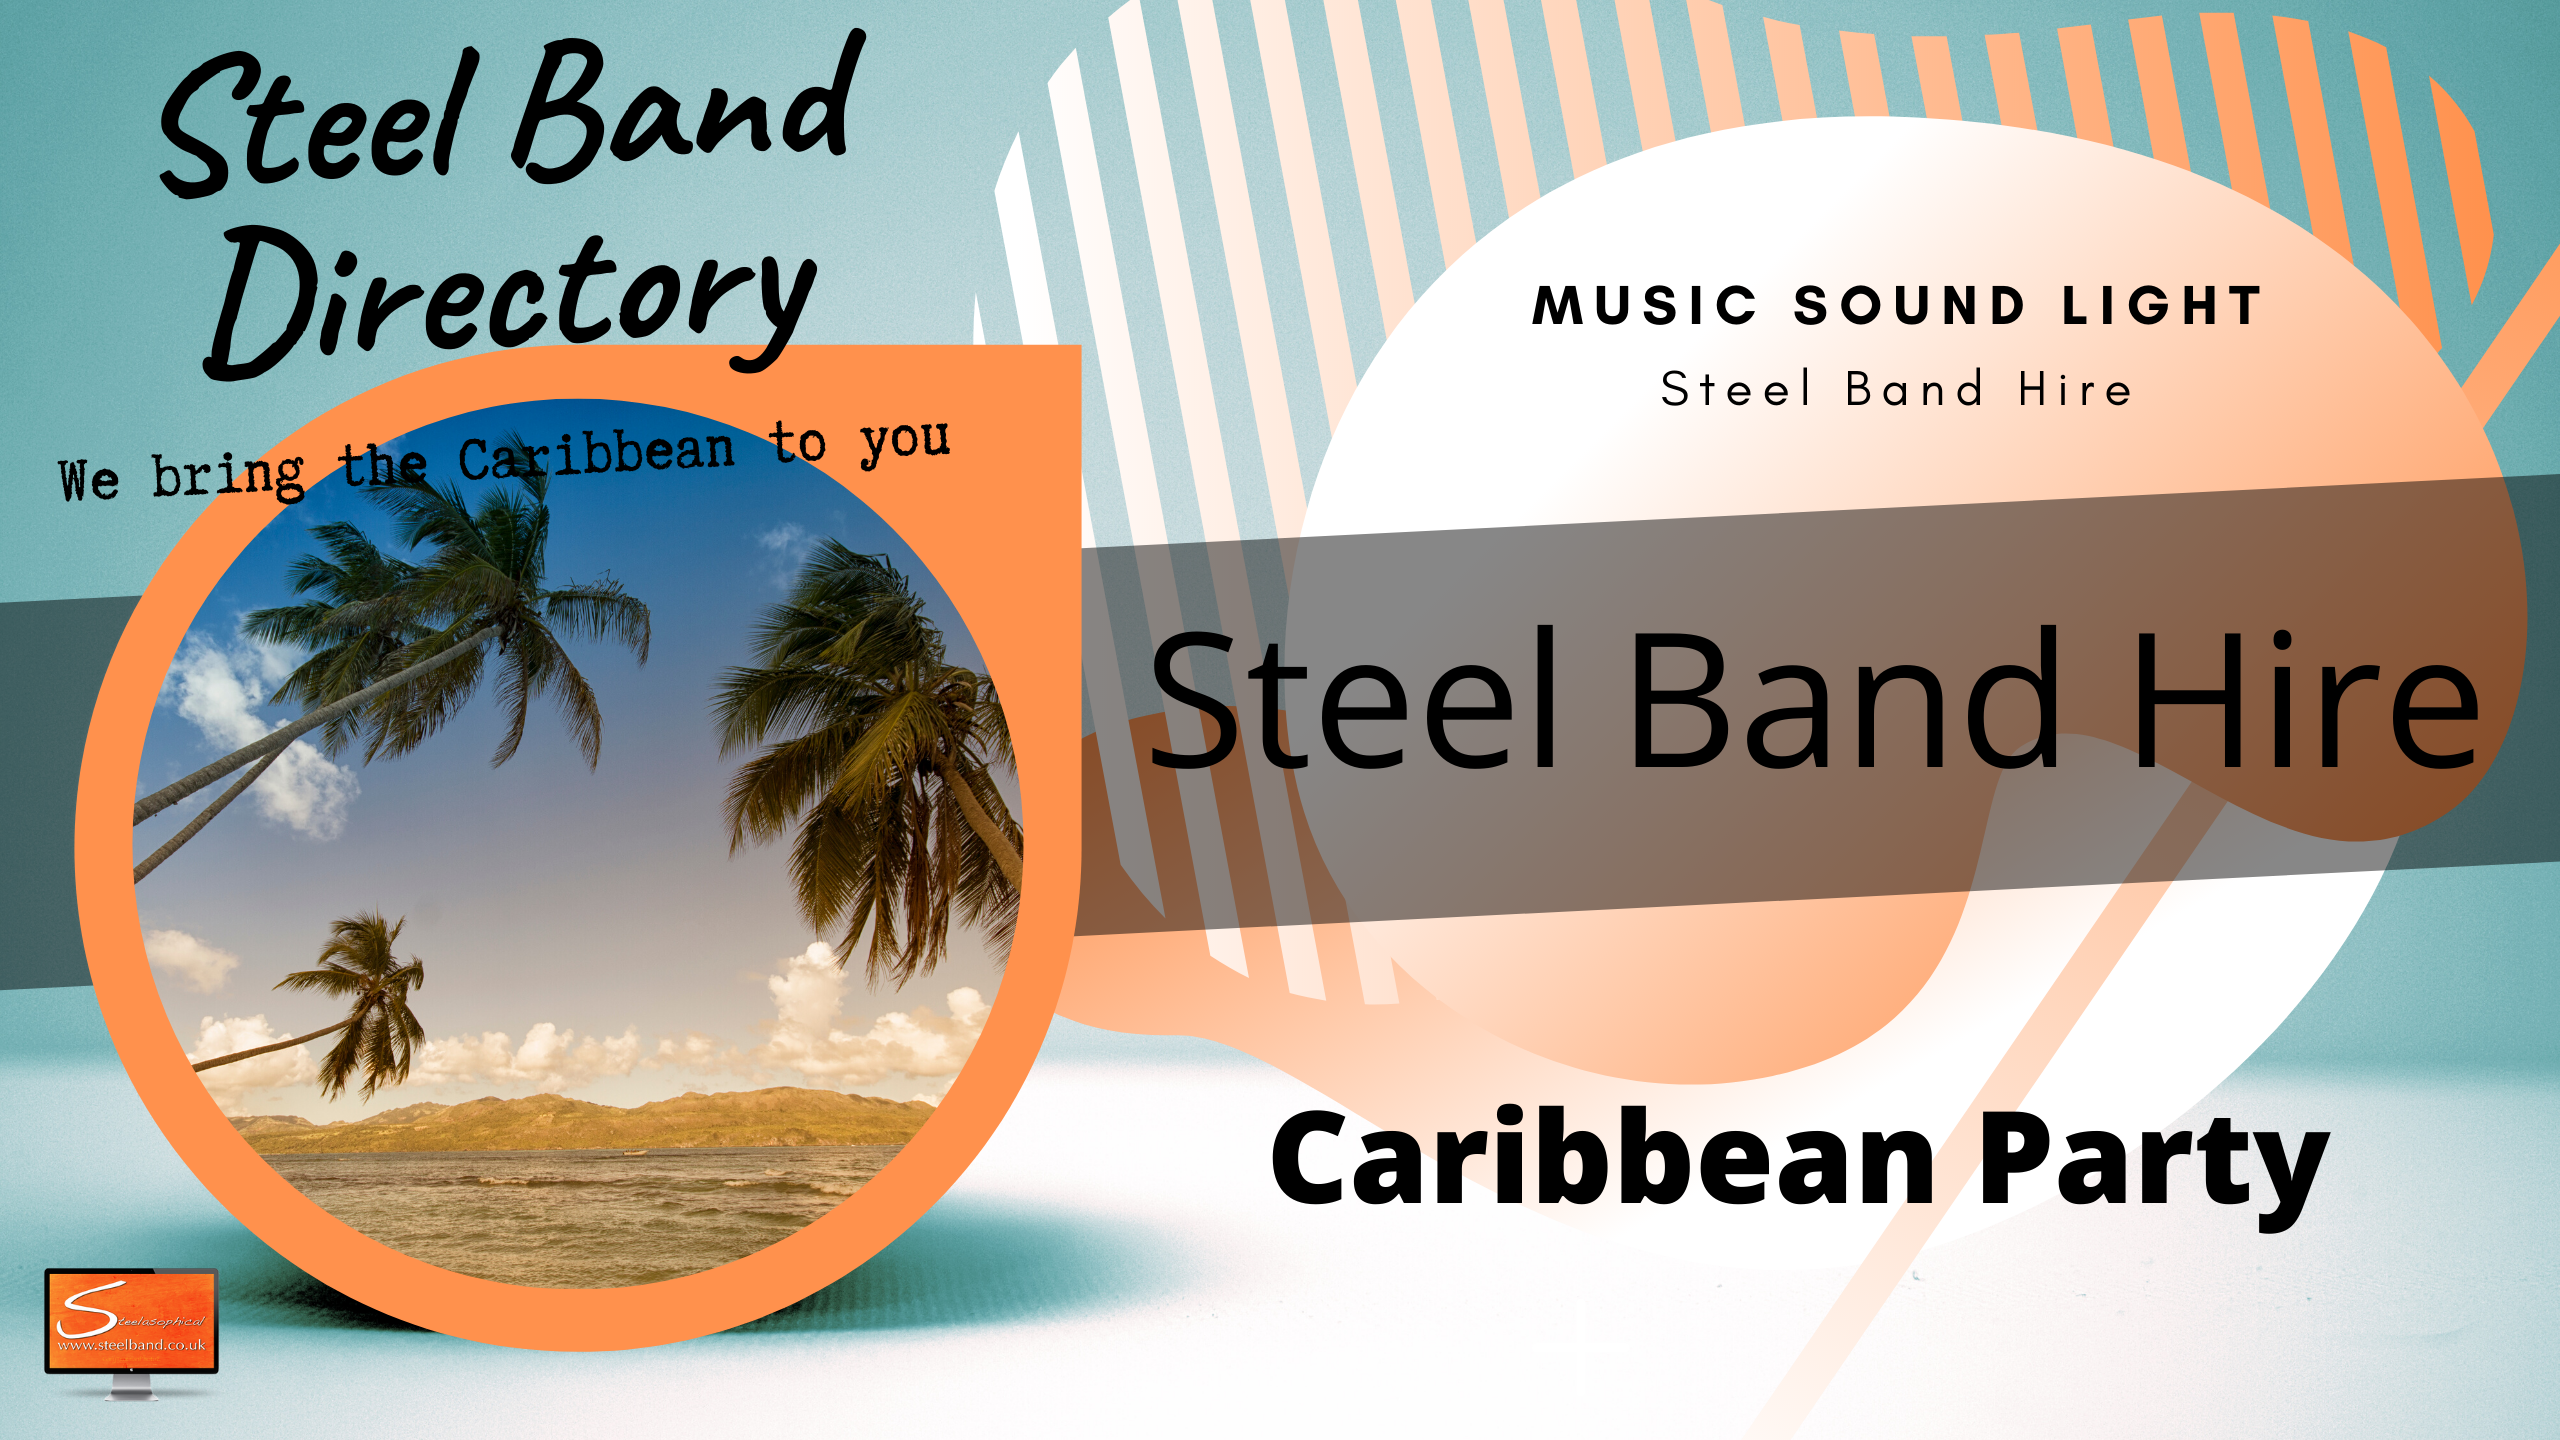 Find Steelband near me